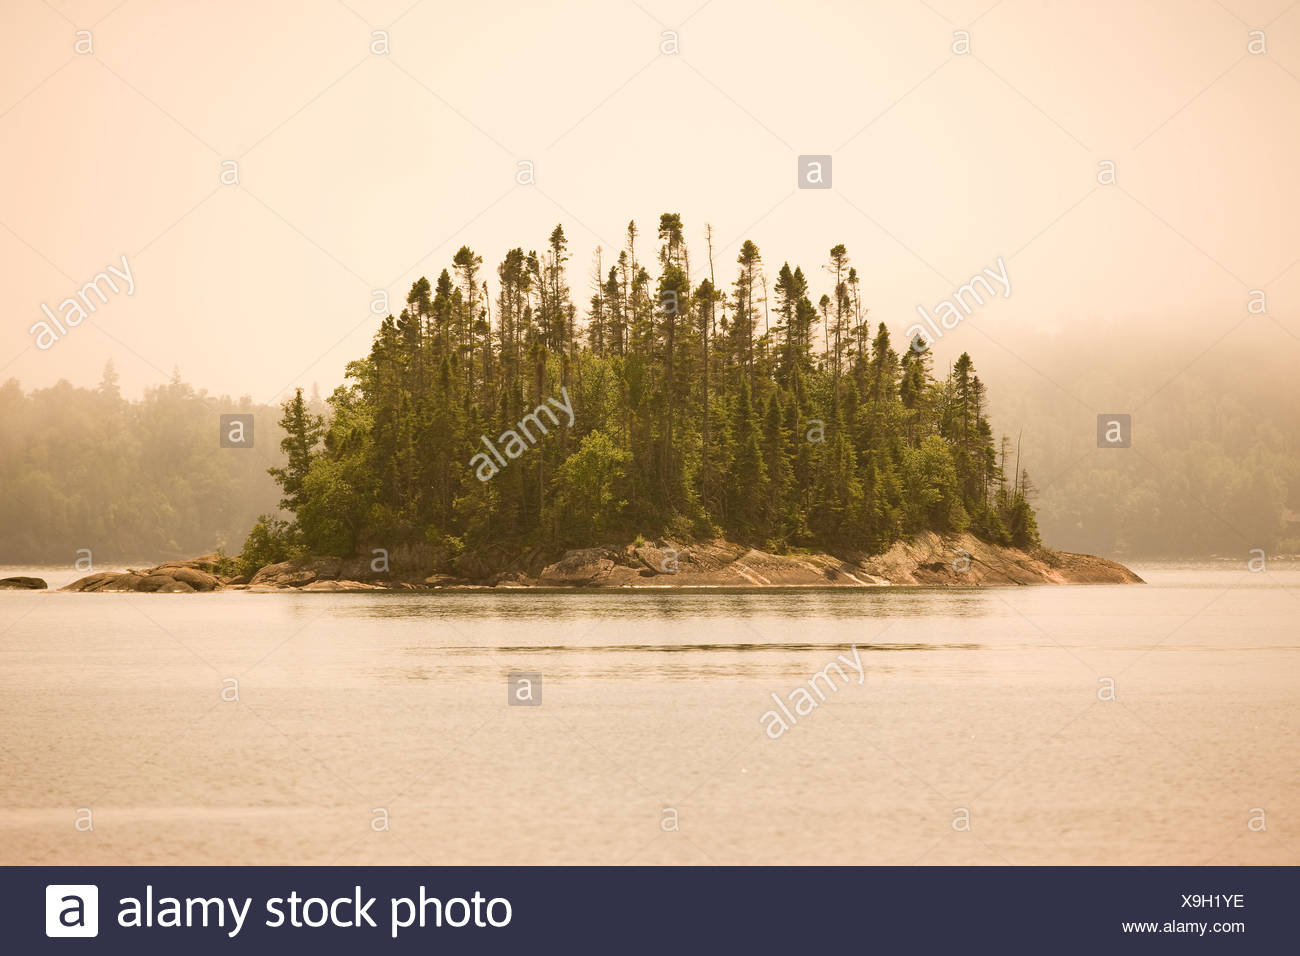 Island in fog in Warp Bay as seen from a canoe/kayak or hike-in campsite along Lake Superior Coastal Trail Lake Superior Provinc - Stock Image